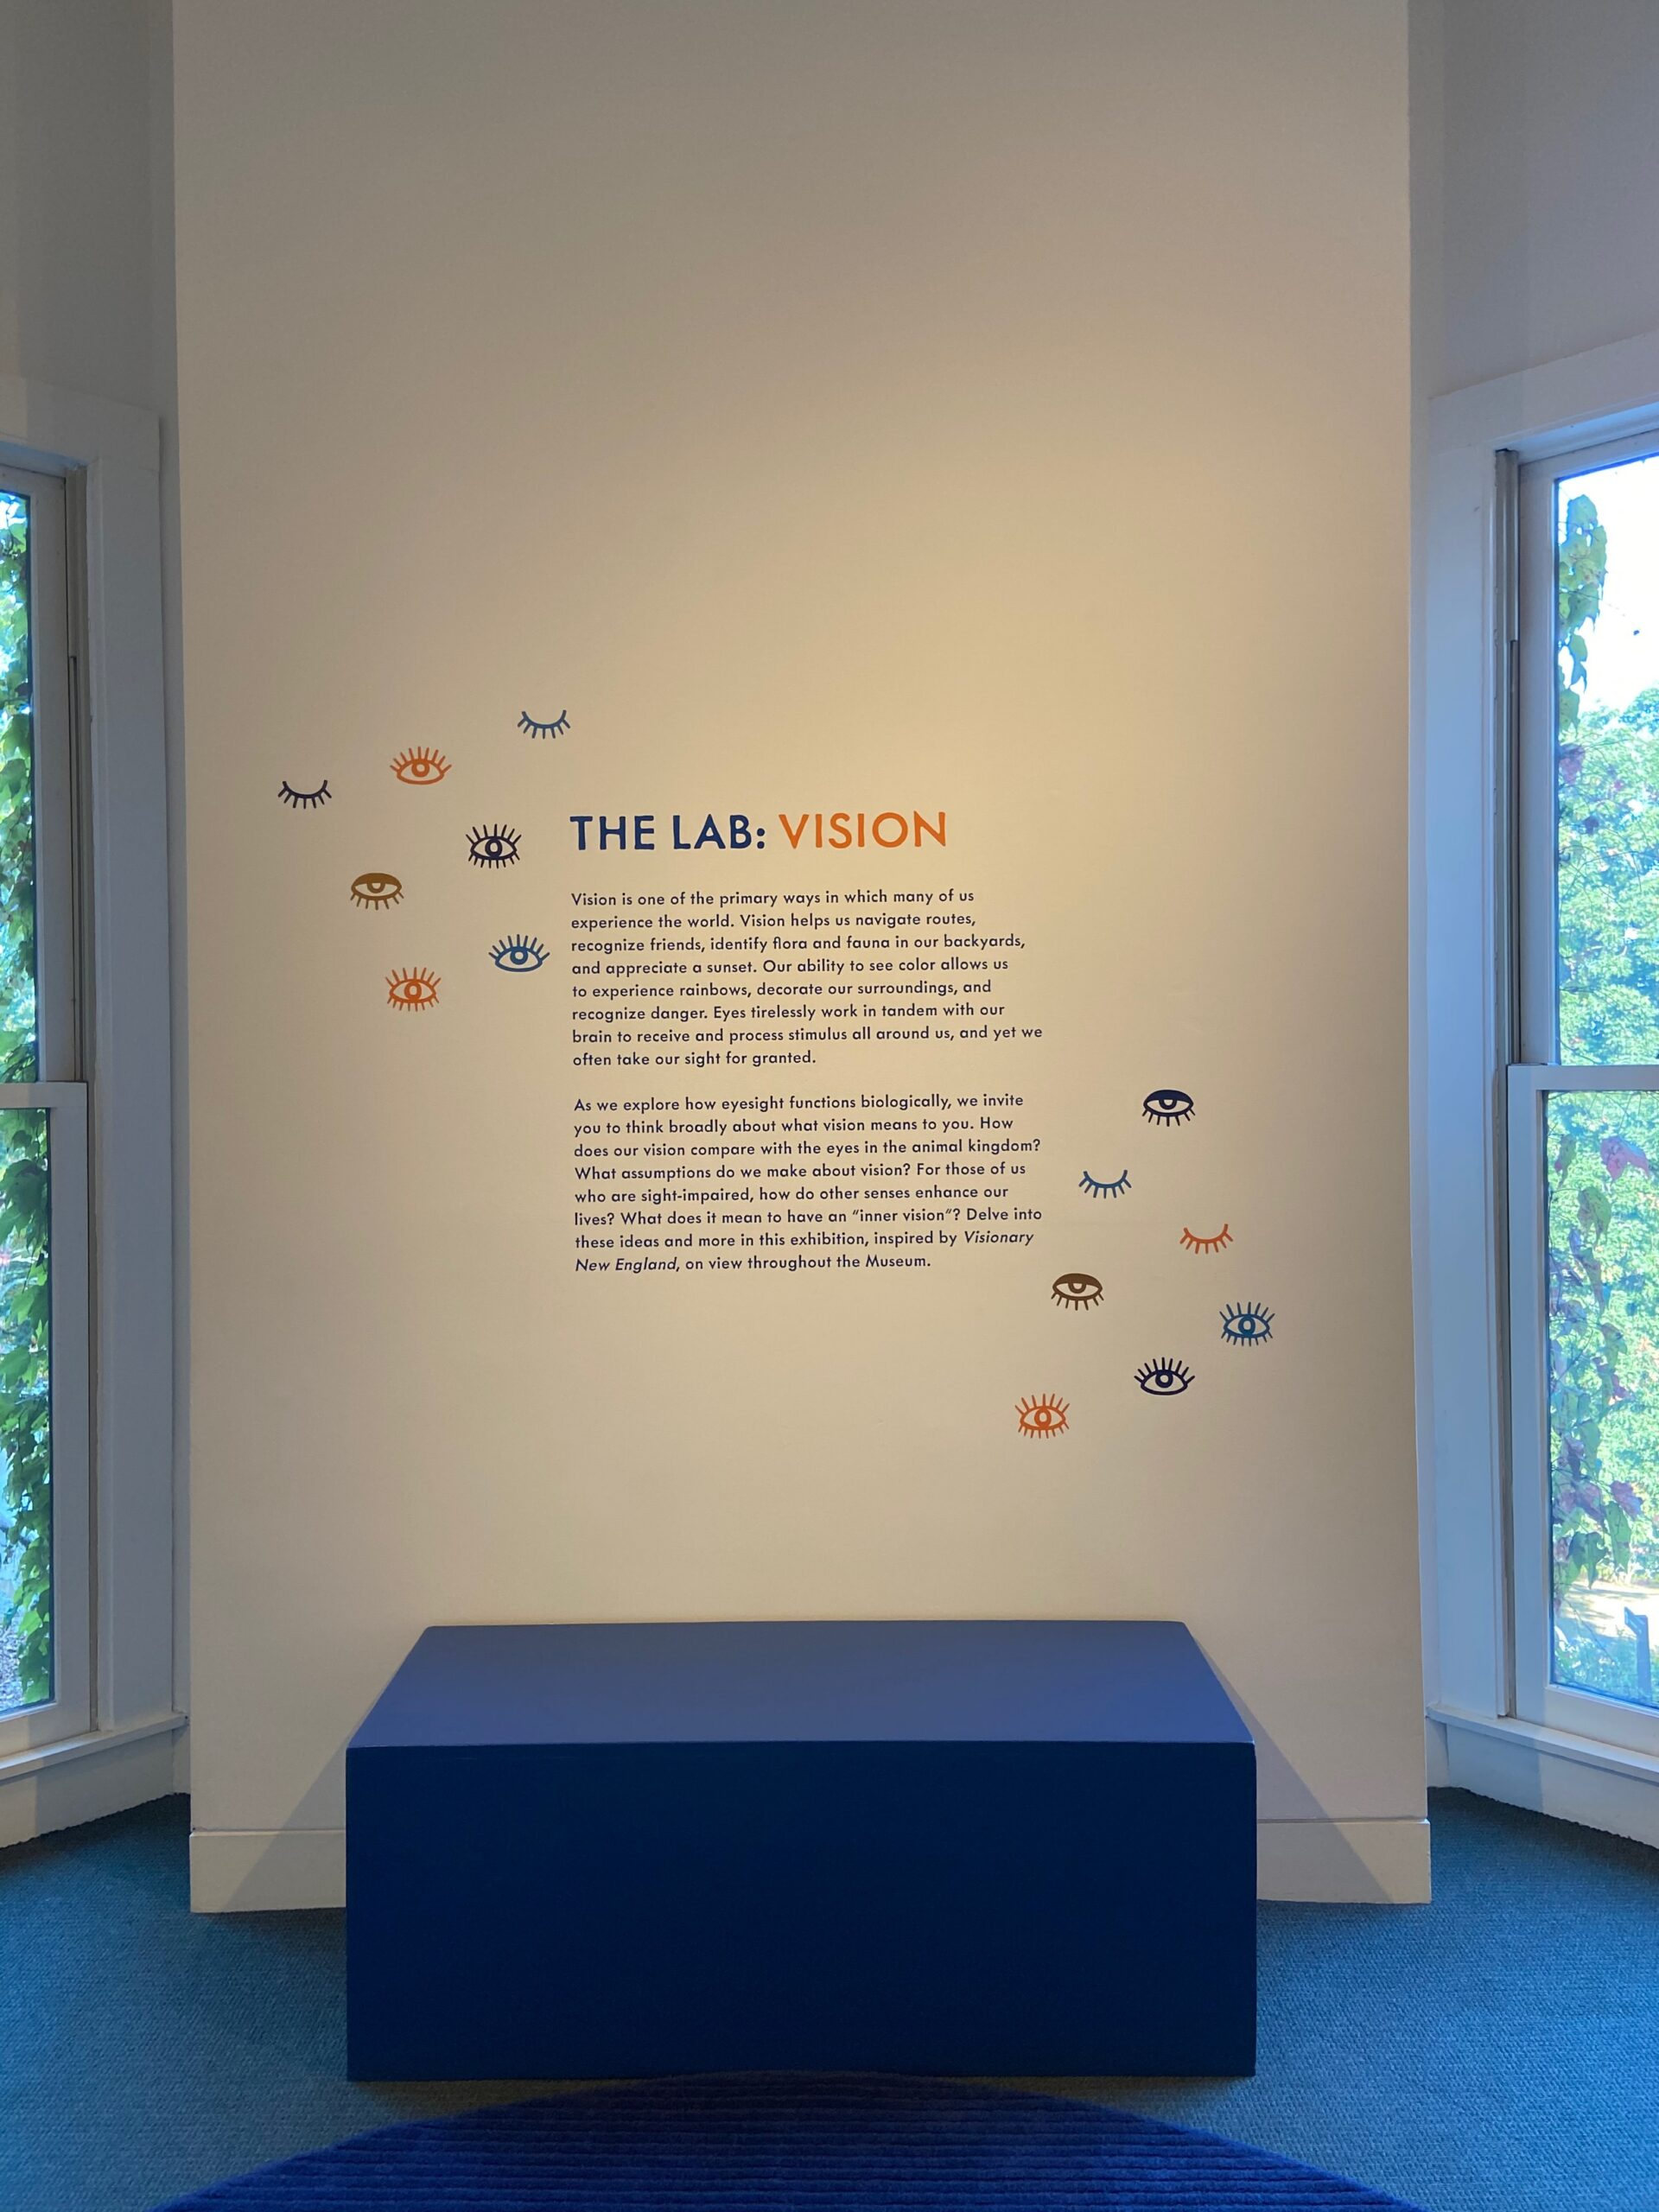 wall text introducing an exhibition